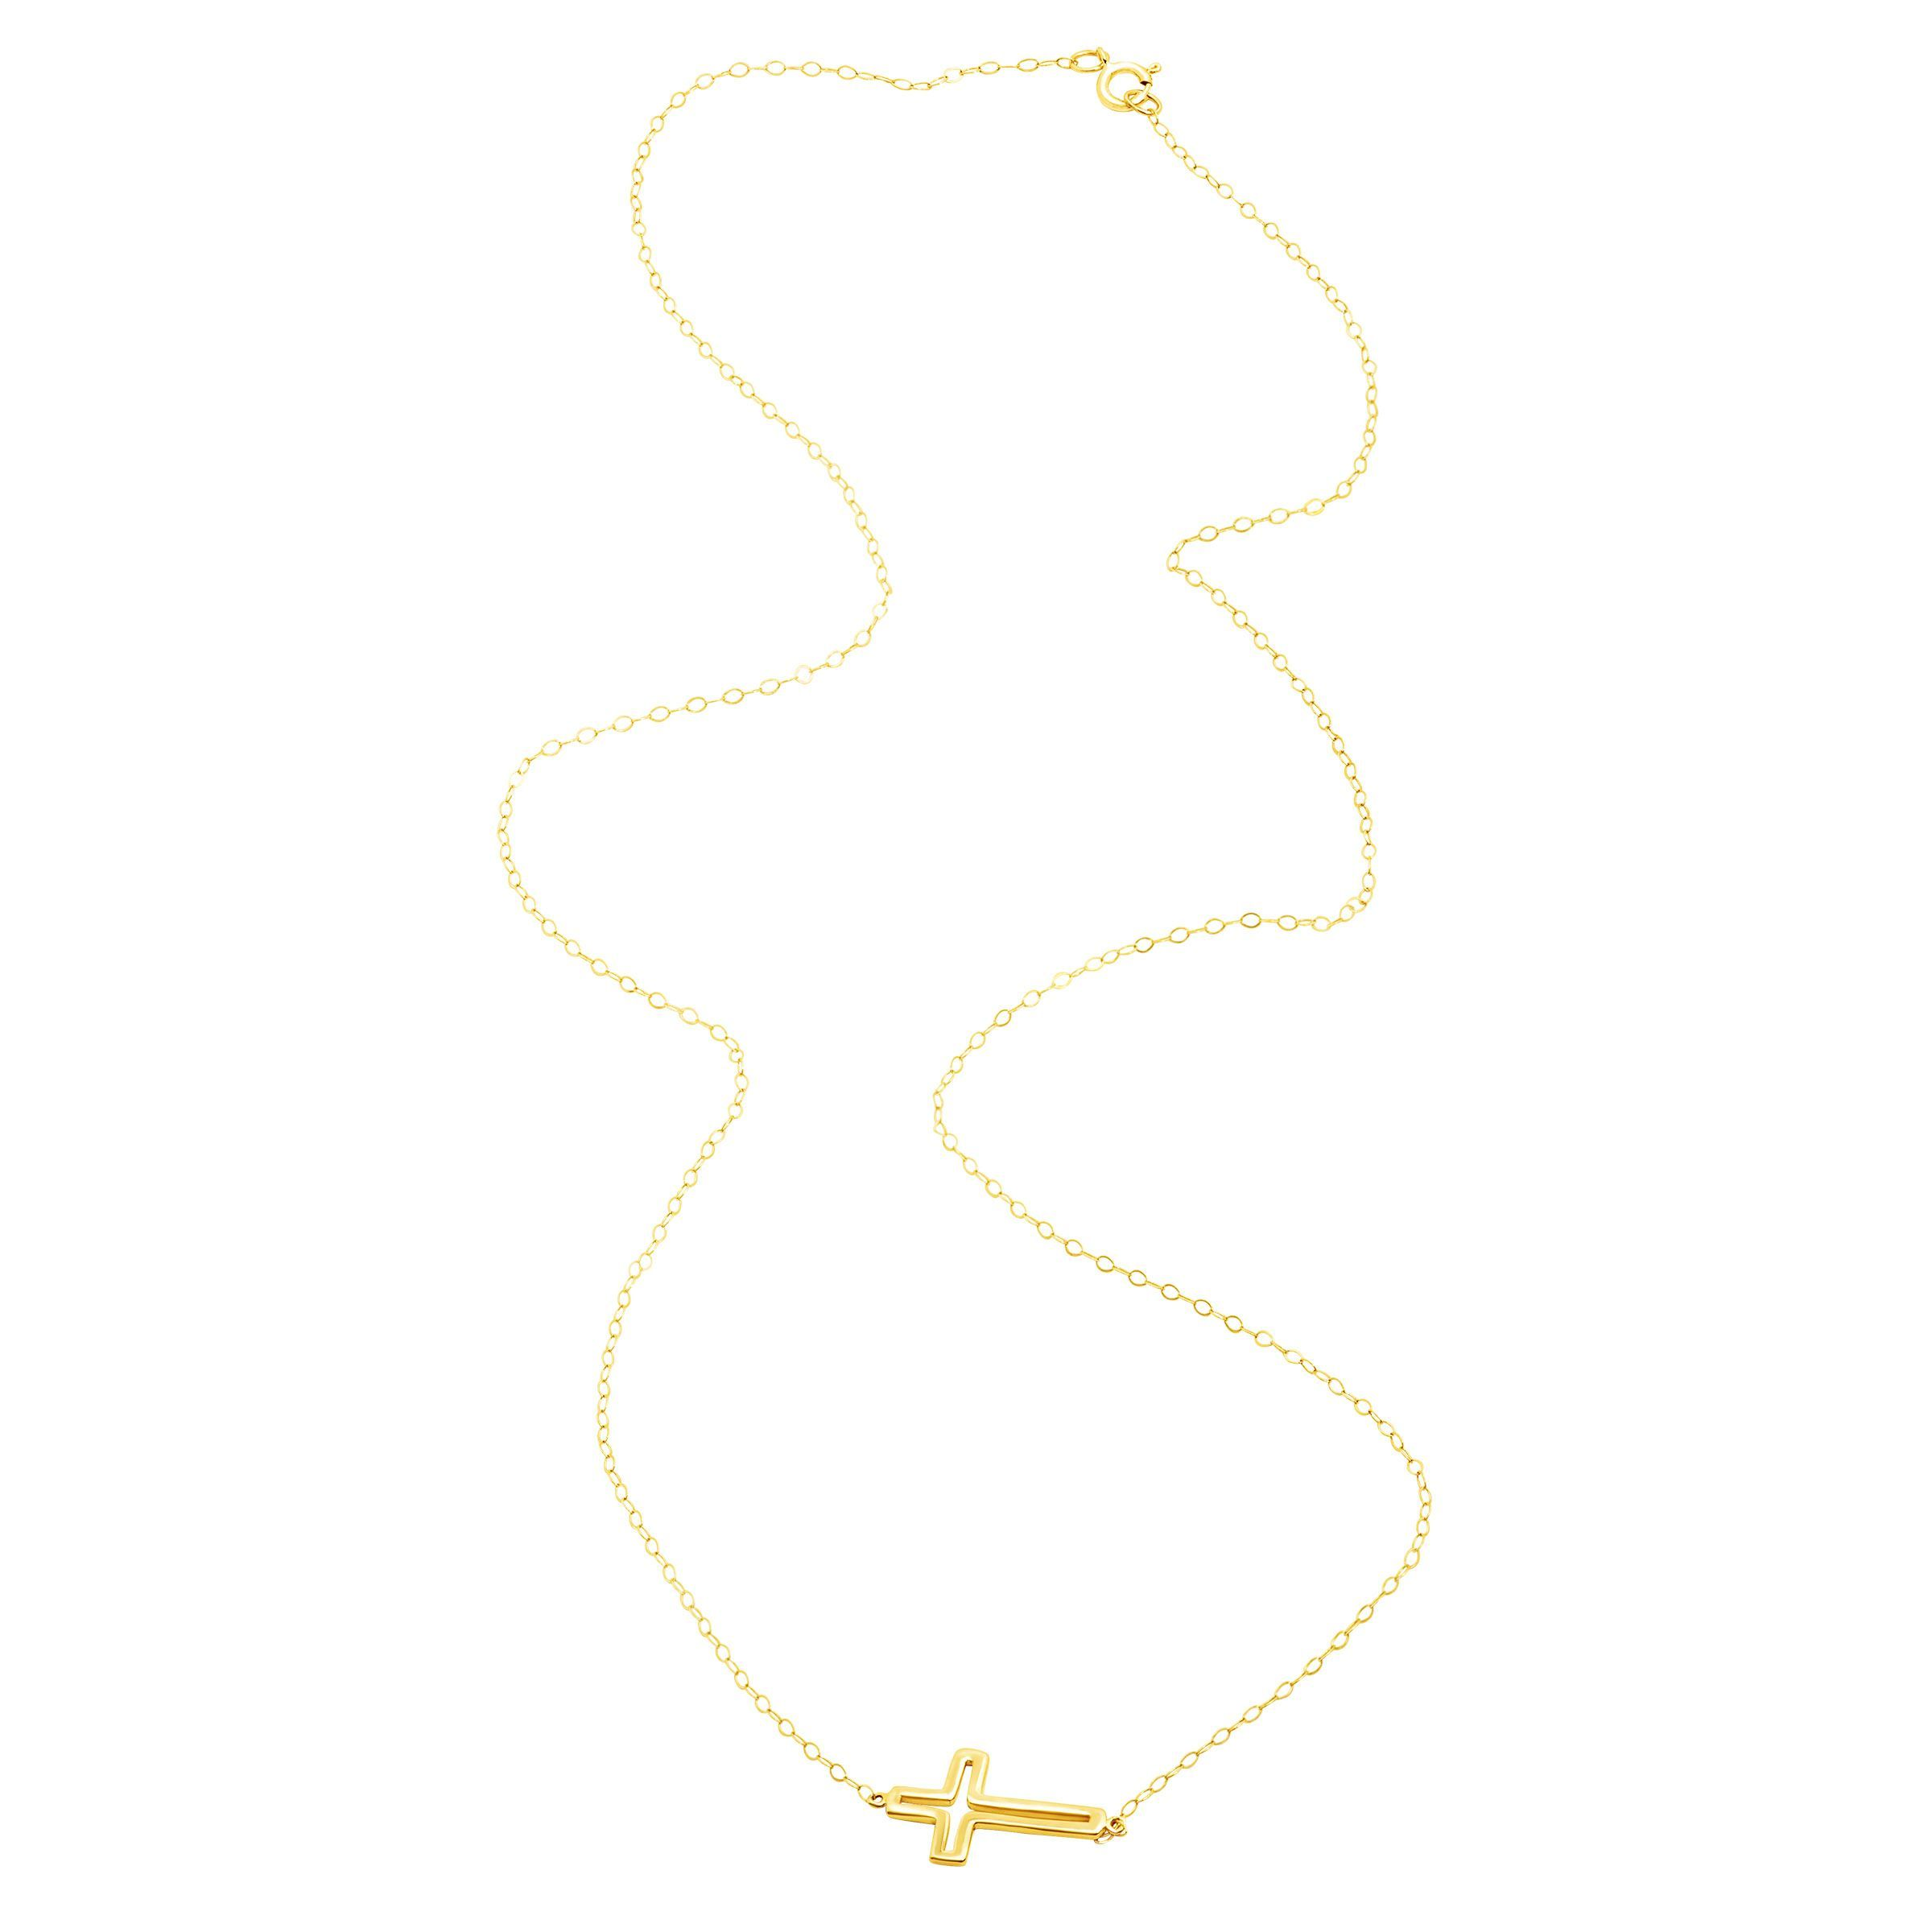 Eternity Gold Silhouette Cross Necklace in 10K Gold